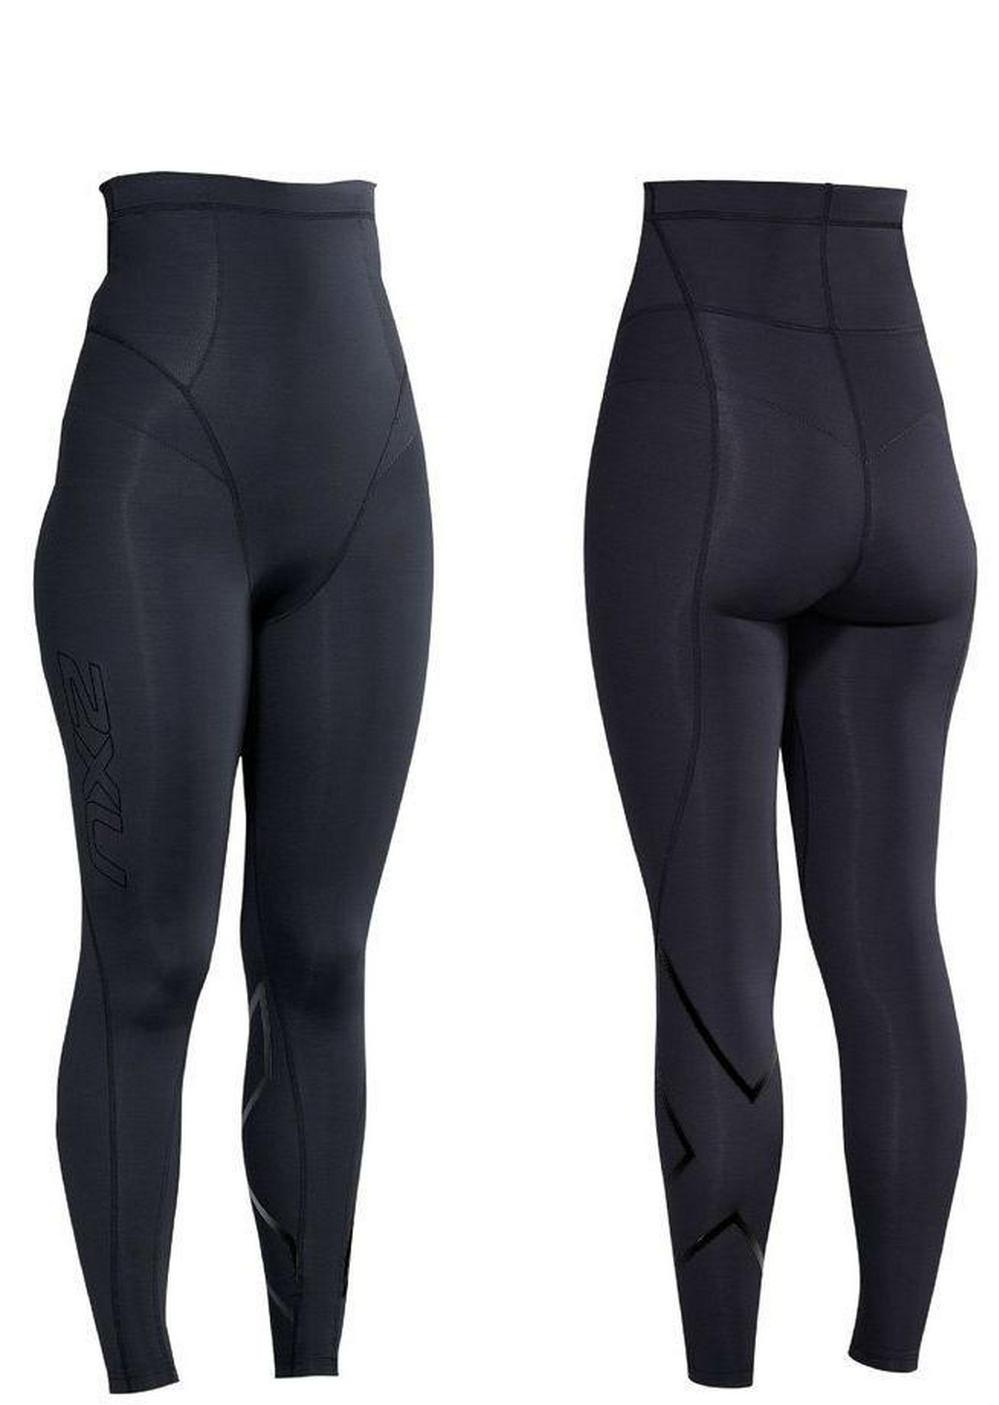 2XU post natal leggings.jpg